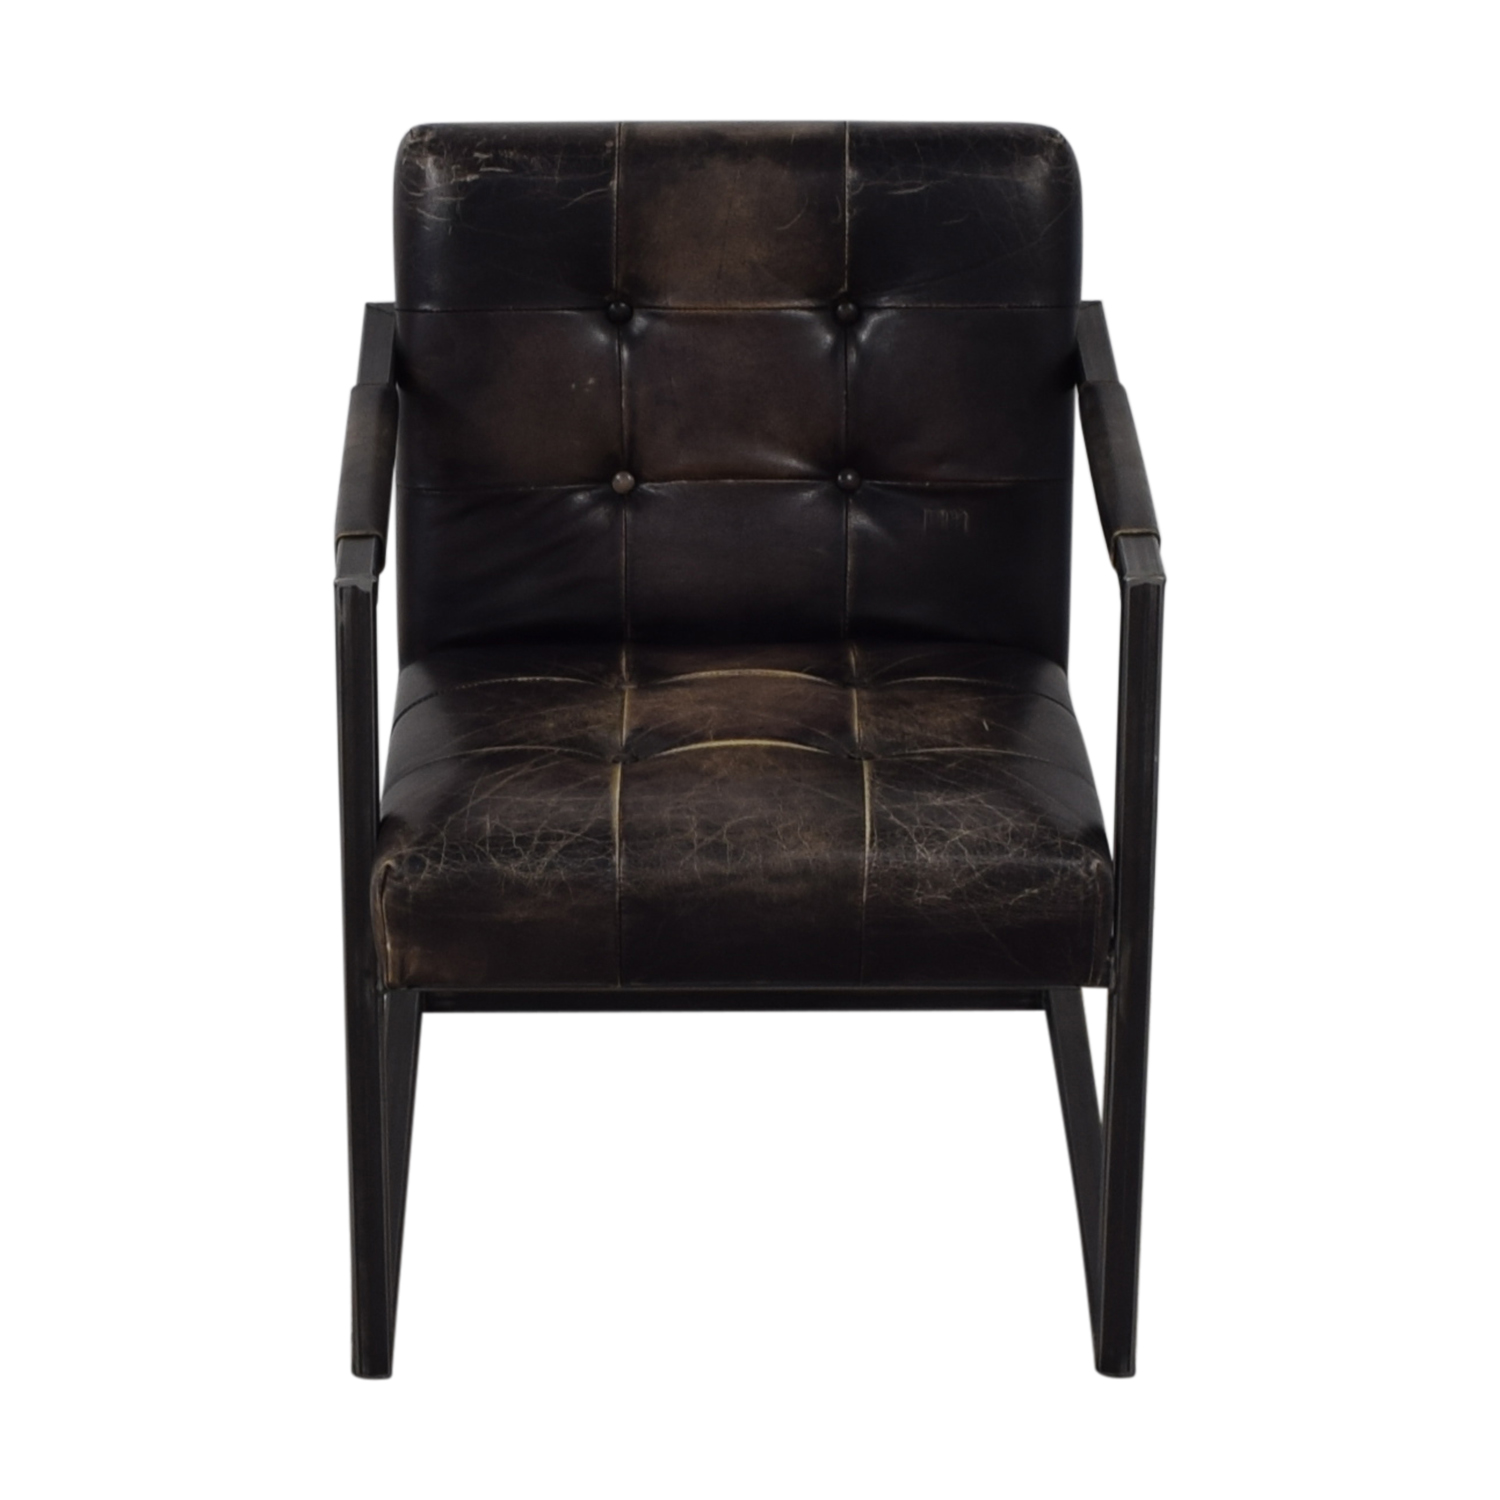 Olde Good Things Vintage Leather Chair price